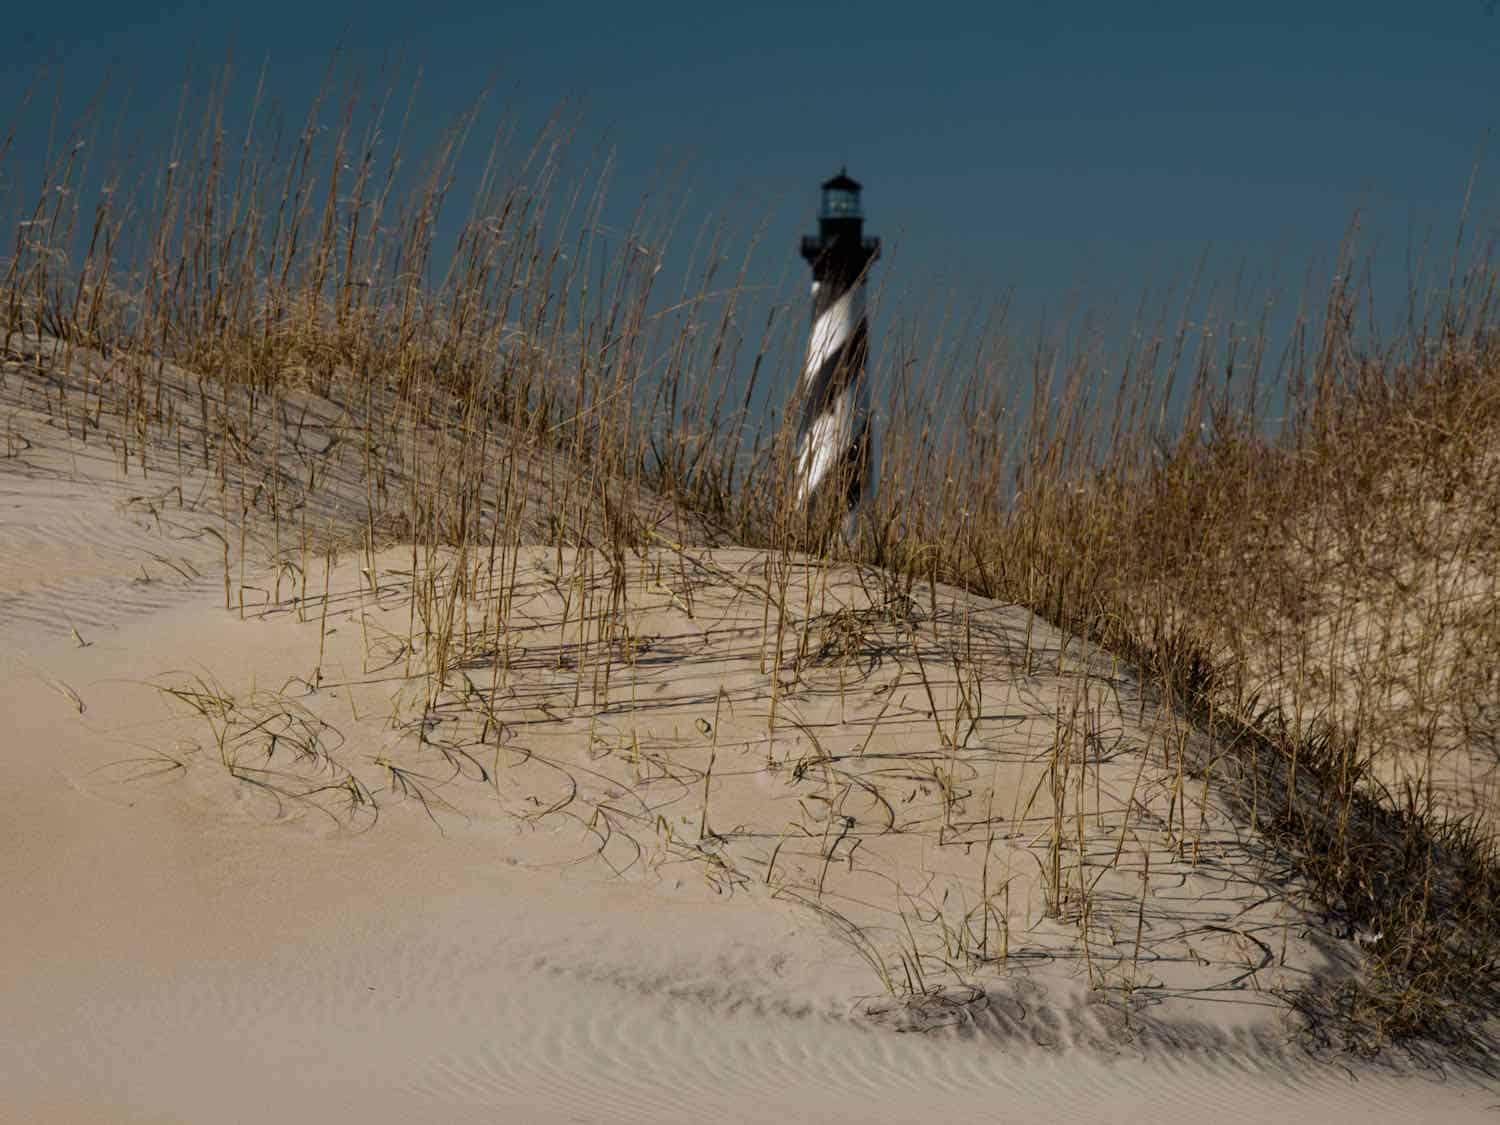 Black and white stripped lighthouse surrounded by grasses and sand dunes.